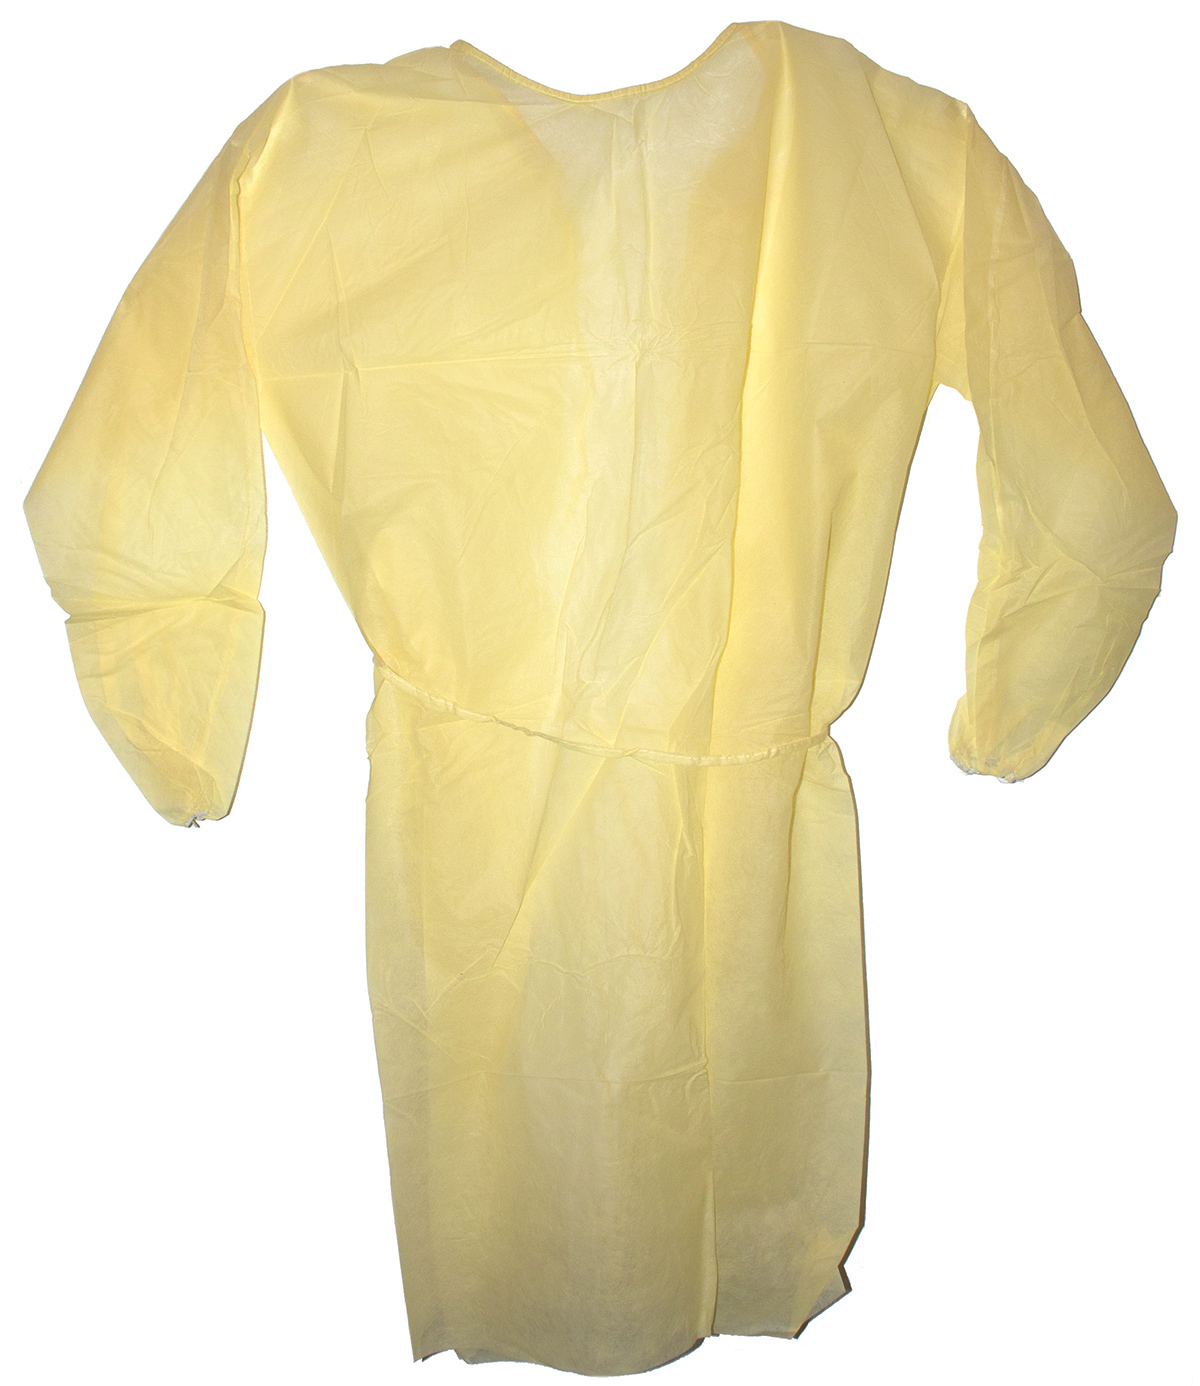 ACE Surgical Supply Co., Inc. Tidi HiRisk Impervious Isolation Gown ...